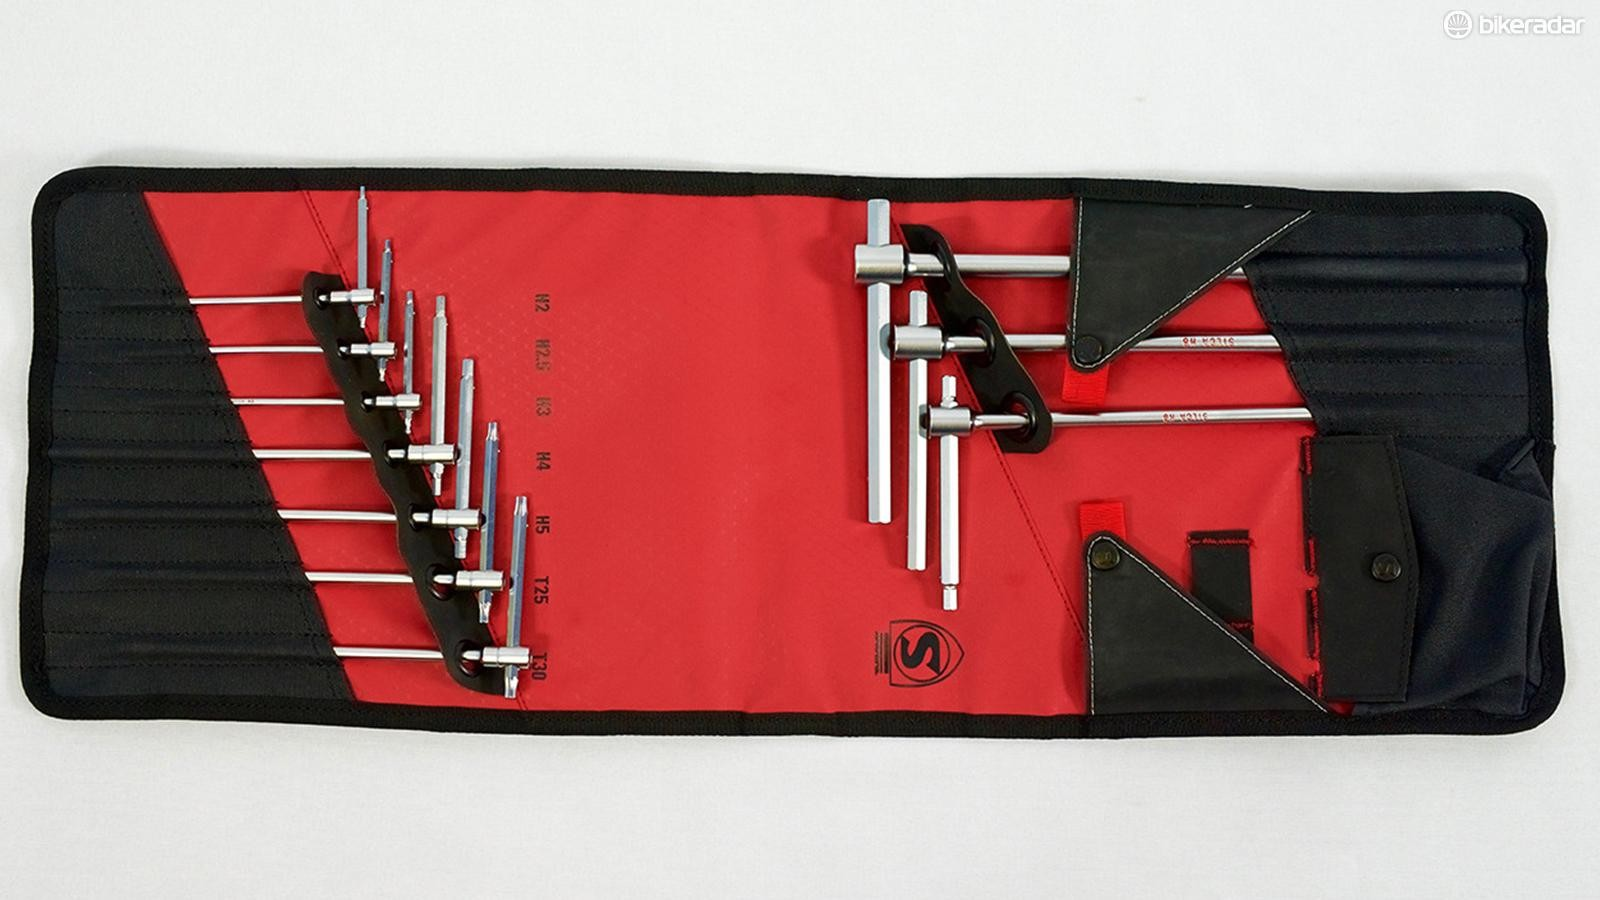 The new T-Handle Folio has 2, 2.5, 3, 4, 5, 6, 8, and 10mm hex wrenches as well as T25 and T30 Torx tools